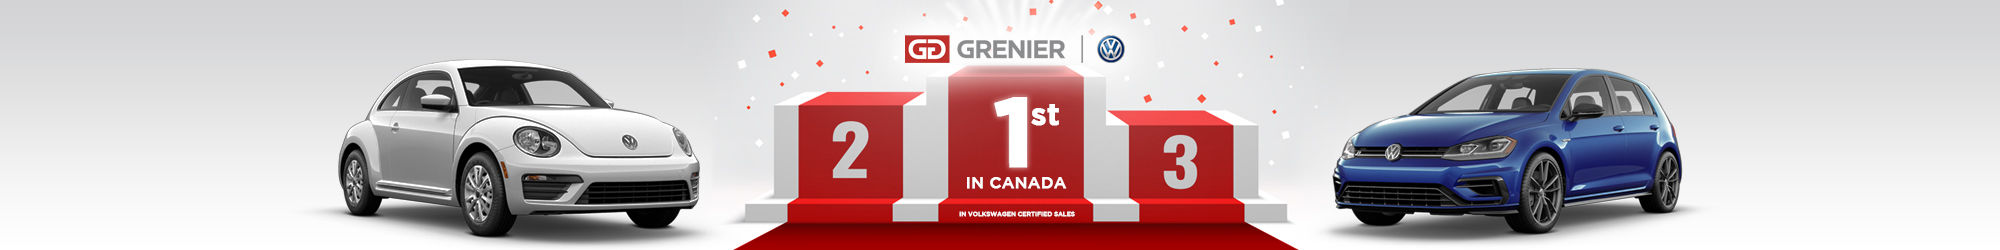 1st in Canada